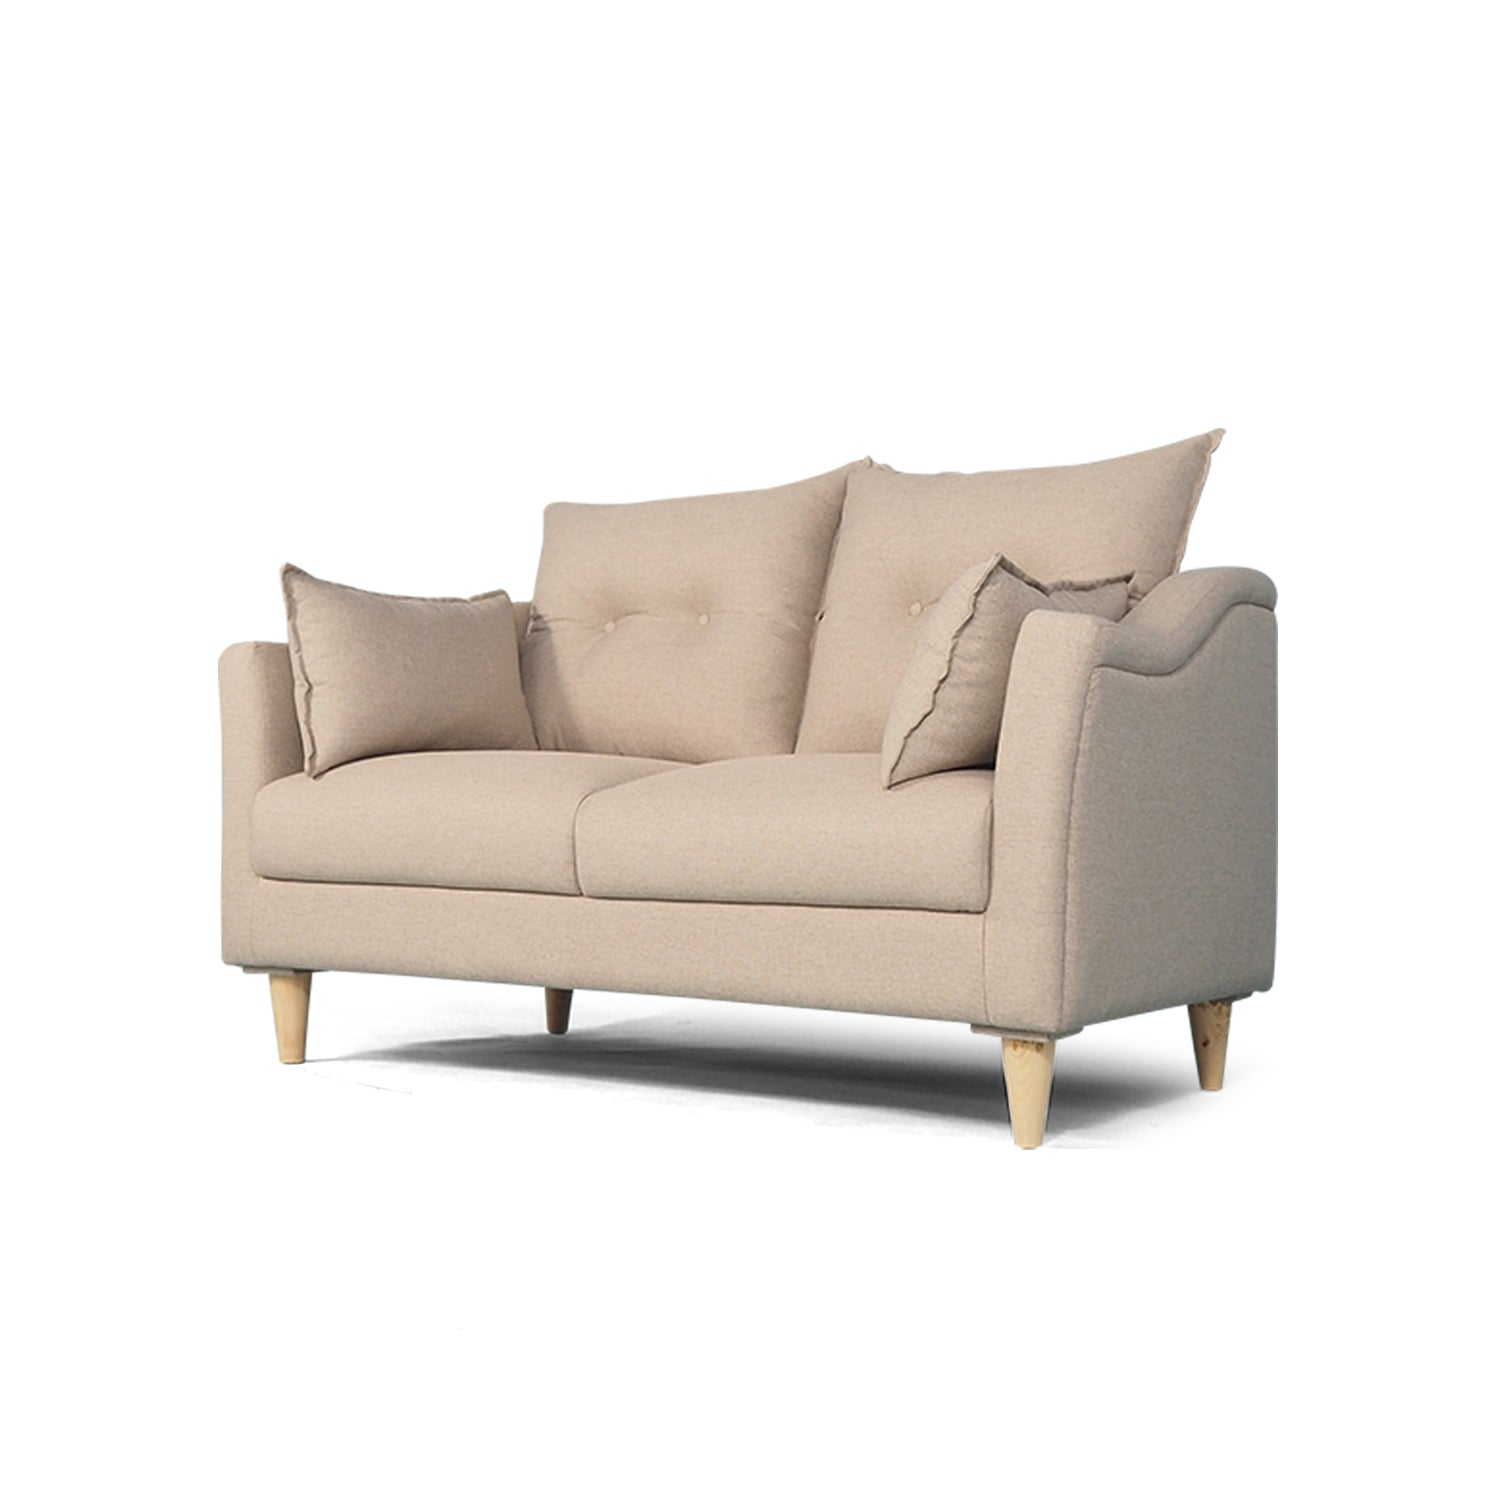 Nolla Sofa 2 seater